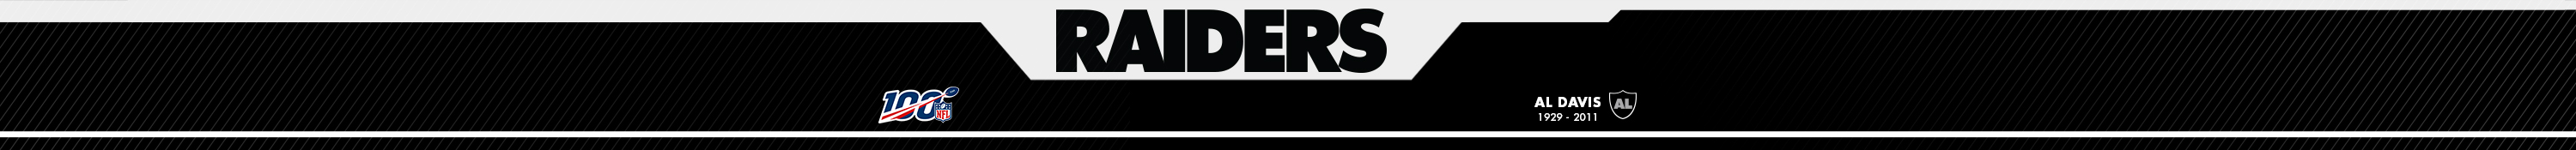 Raiders com | The Official Site of the Oakland Raiders